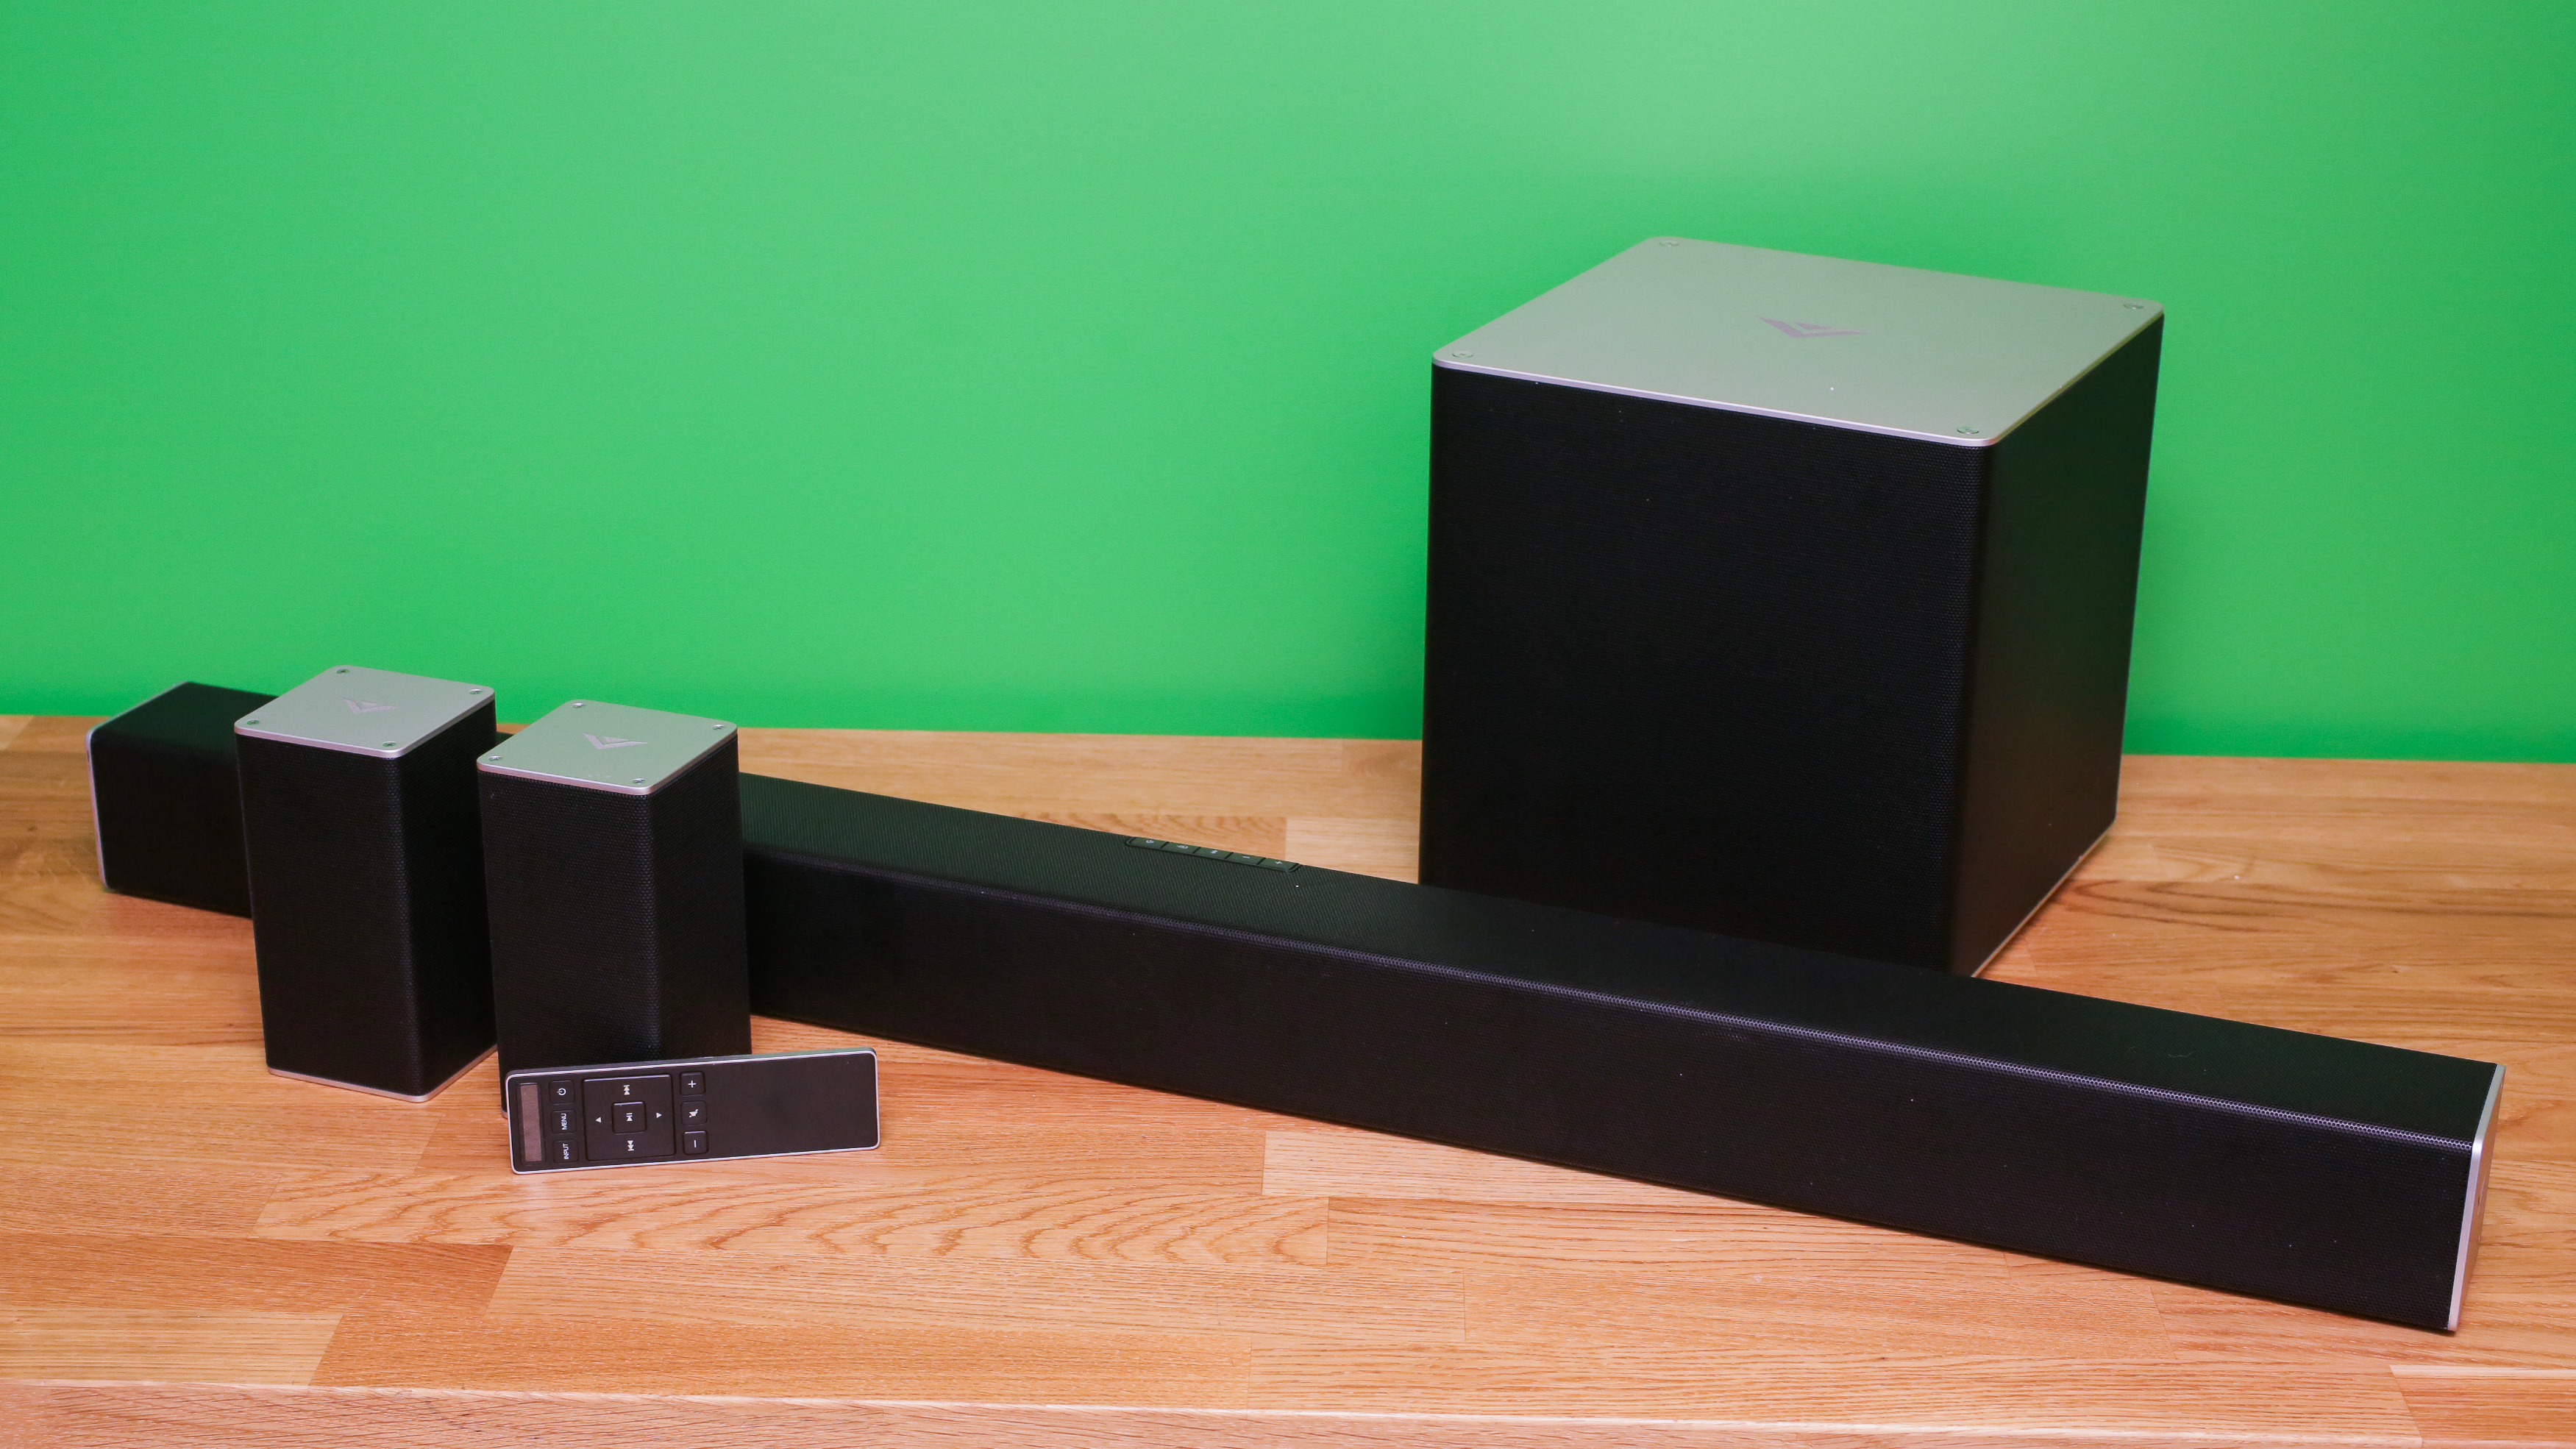 Vizio 5.1 sound bar